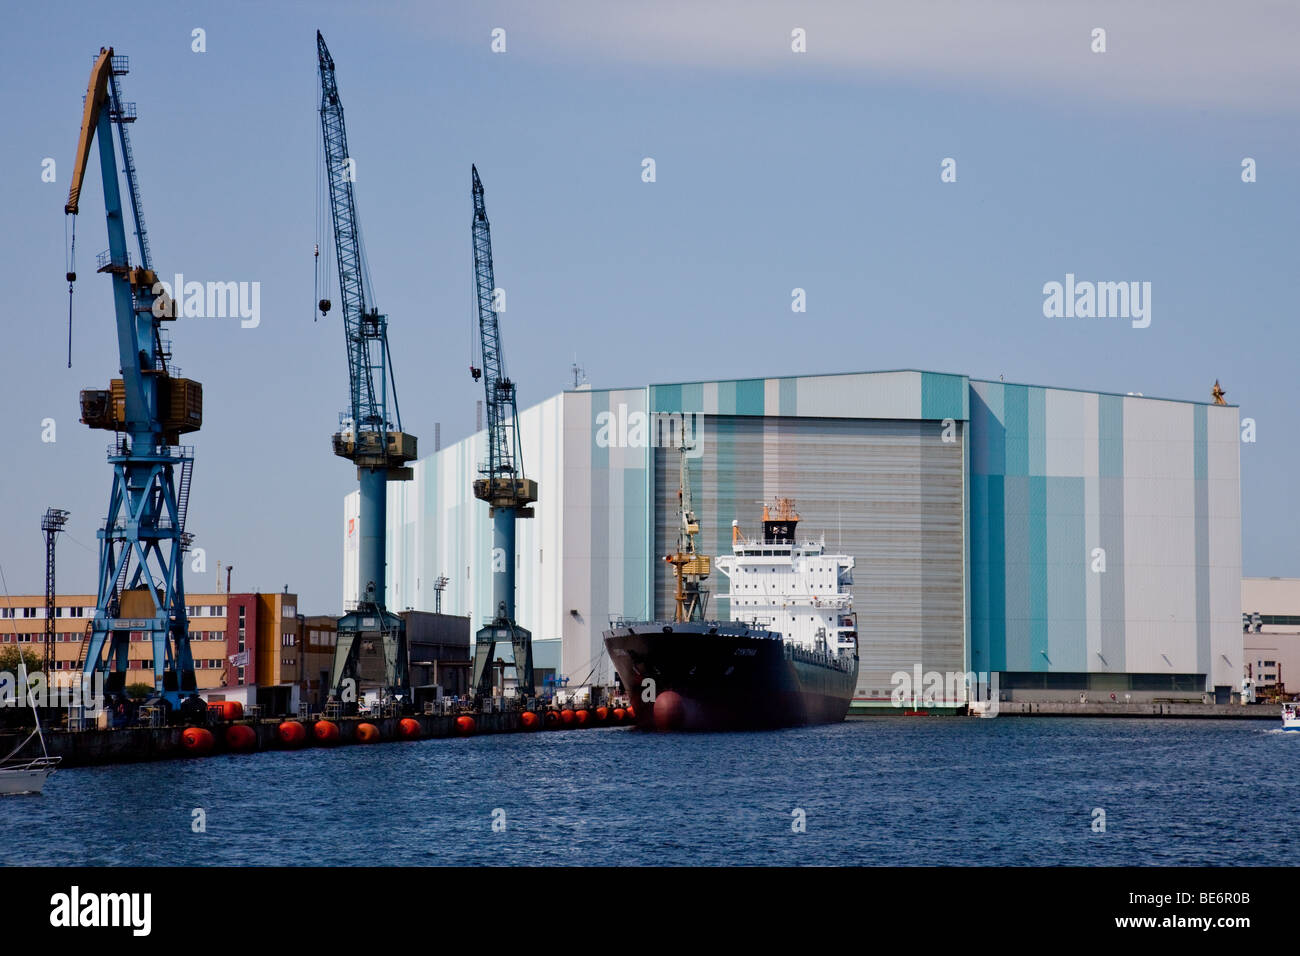 Shipyard of Wadan and freighter Cynthia in the harbor of Wismar, Germany - Stock Image